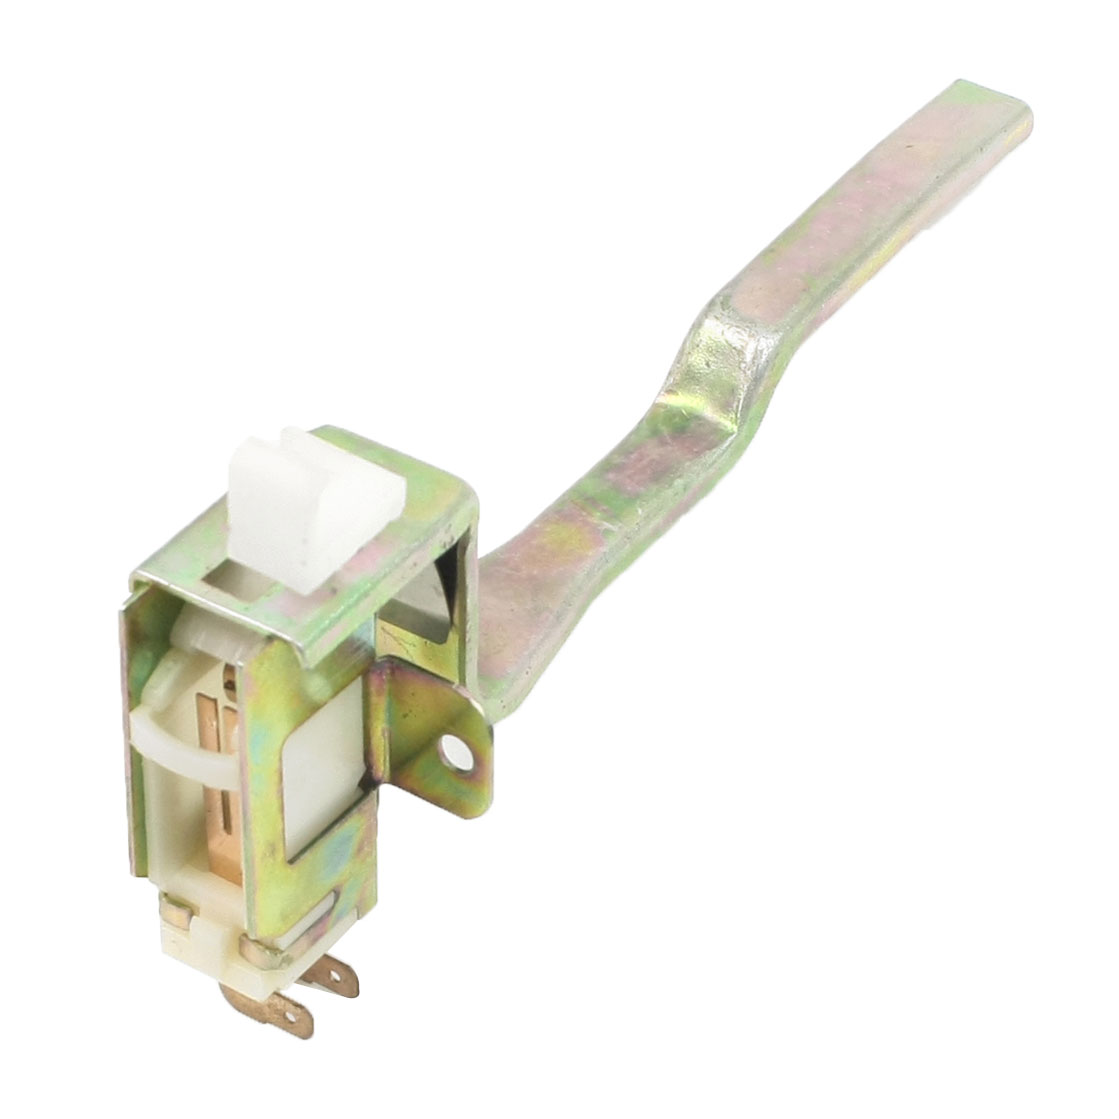 2 Terminals Momentary Action Safety Switch for Haier Washing Machine